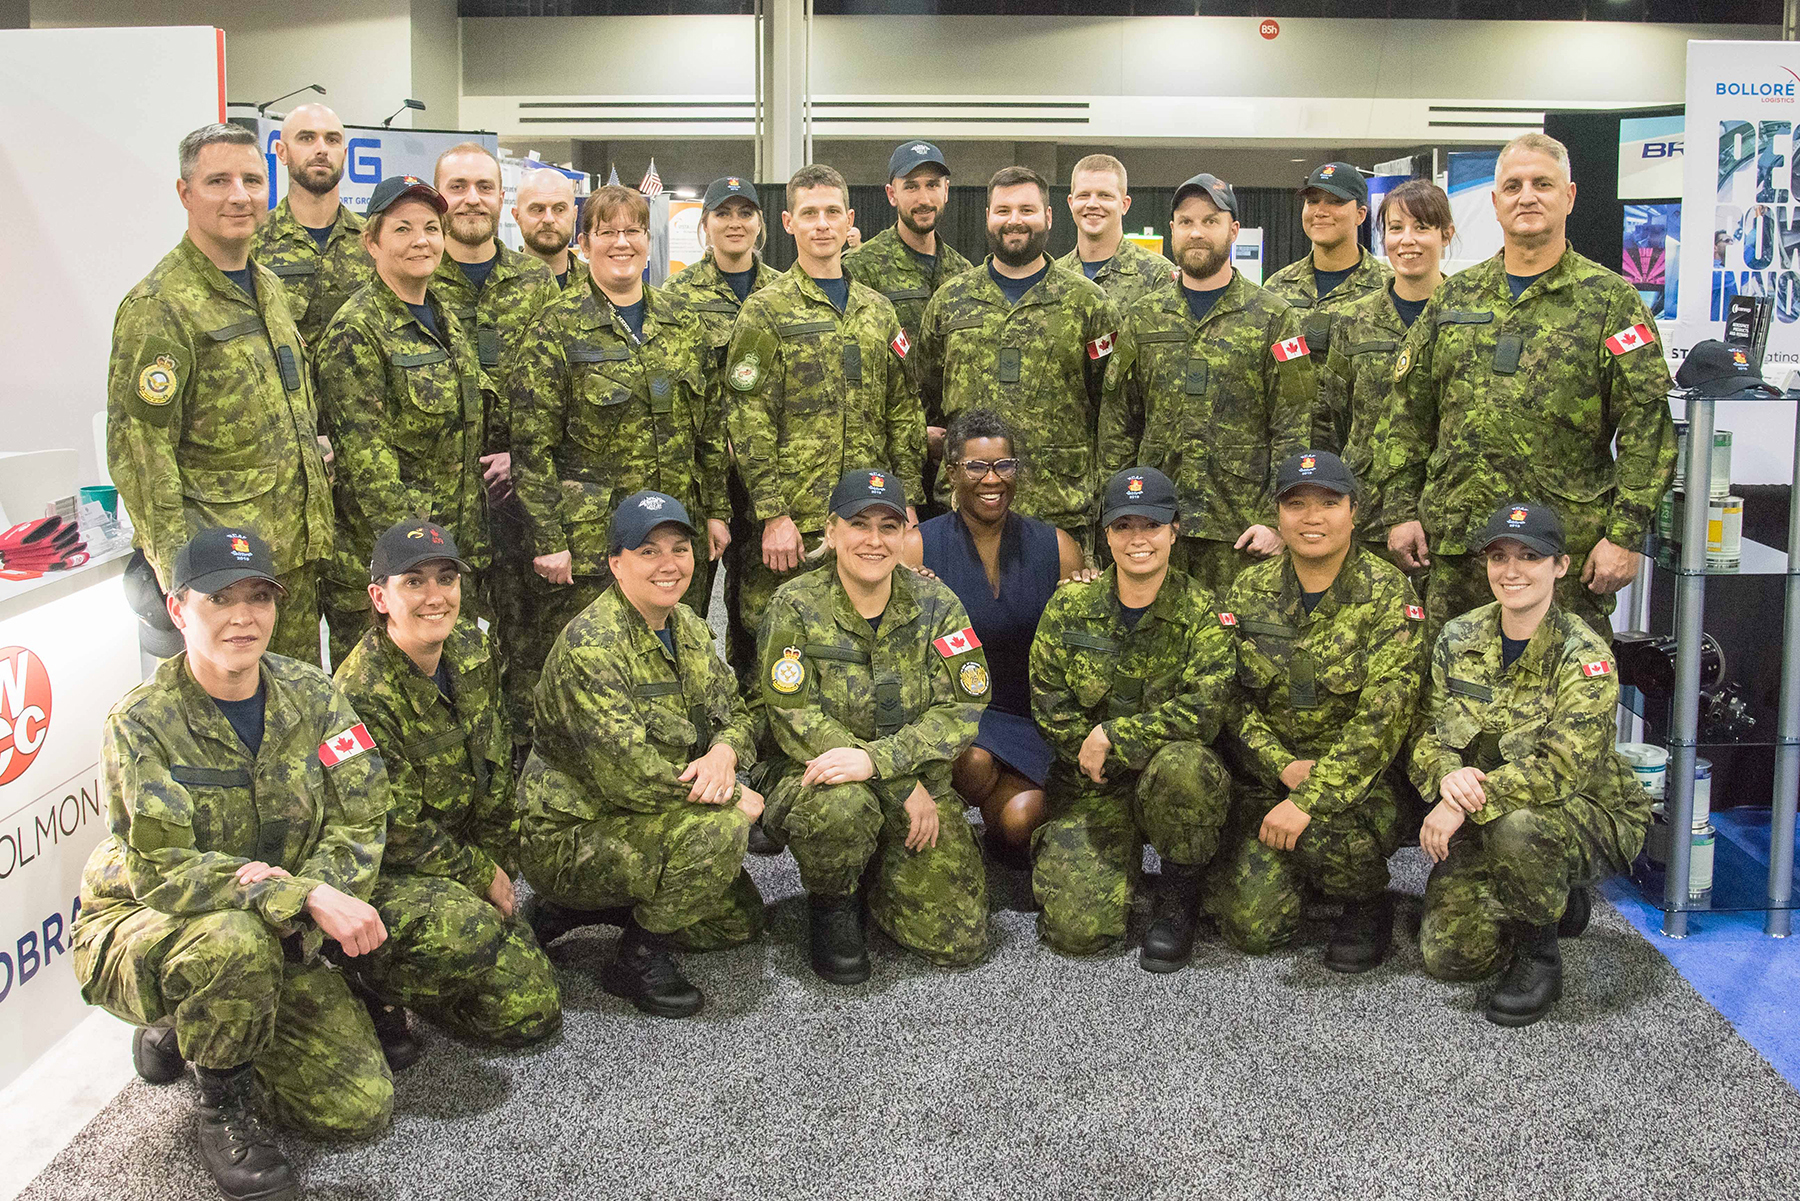 Nadia Theodore (kneeling, centre), Consul General of Canada in Atlanta, meets with RCAF air maintenance technicians during the Aerospace Maintenance Competition held in Atlanta, Georgia, April 8-11, 2019. PHOTO: RCAF